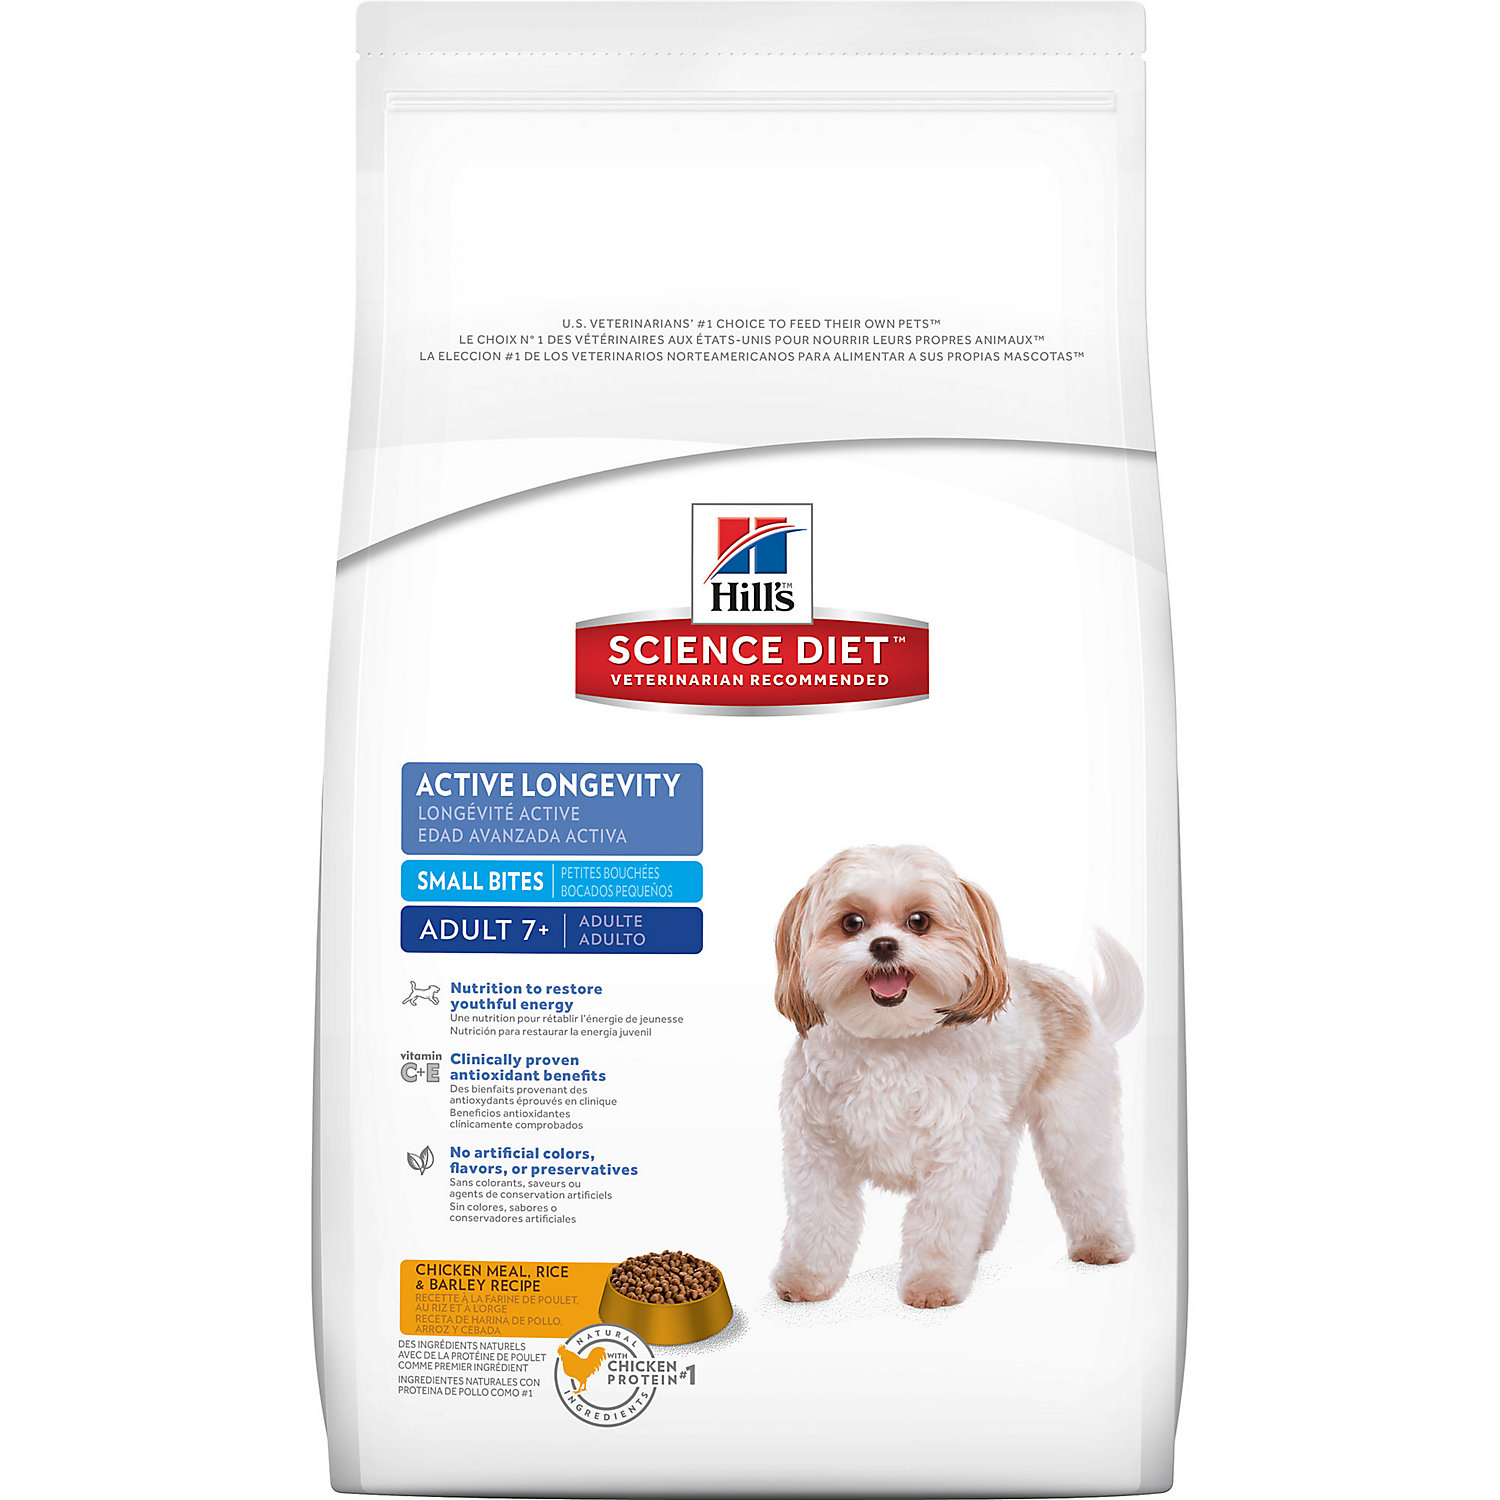 Hills Science Diet Active Longevity Small Bites Senior Dry Dog Food 5 Lbs. 5 Lb Bag